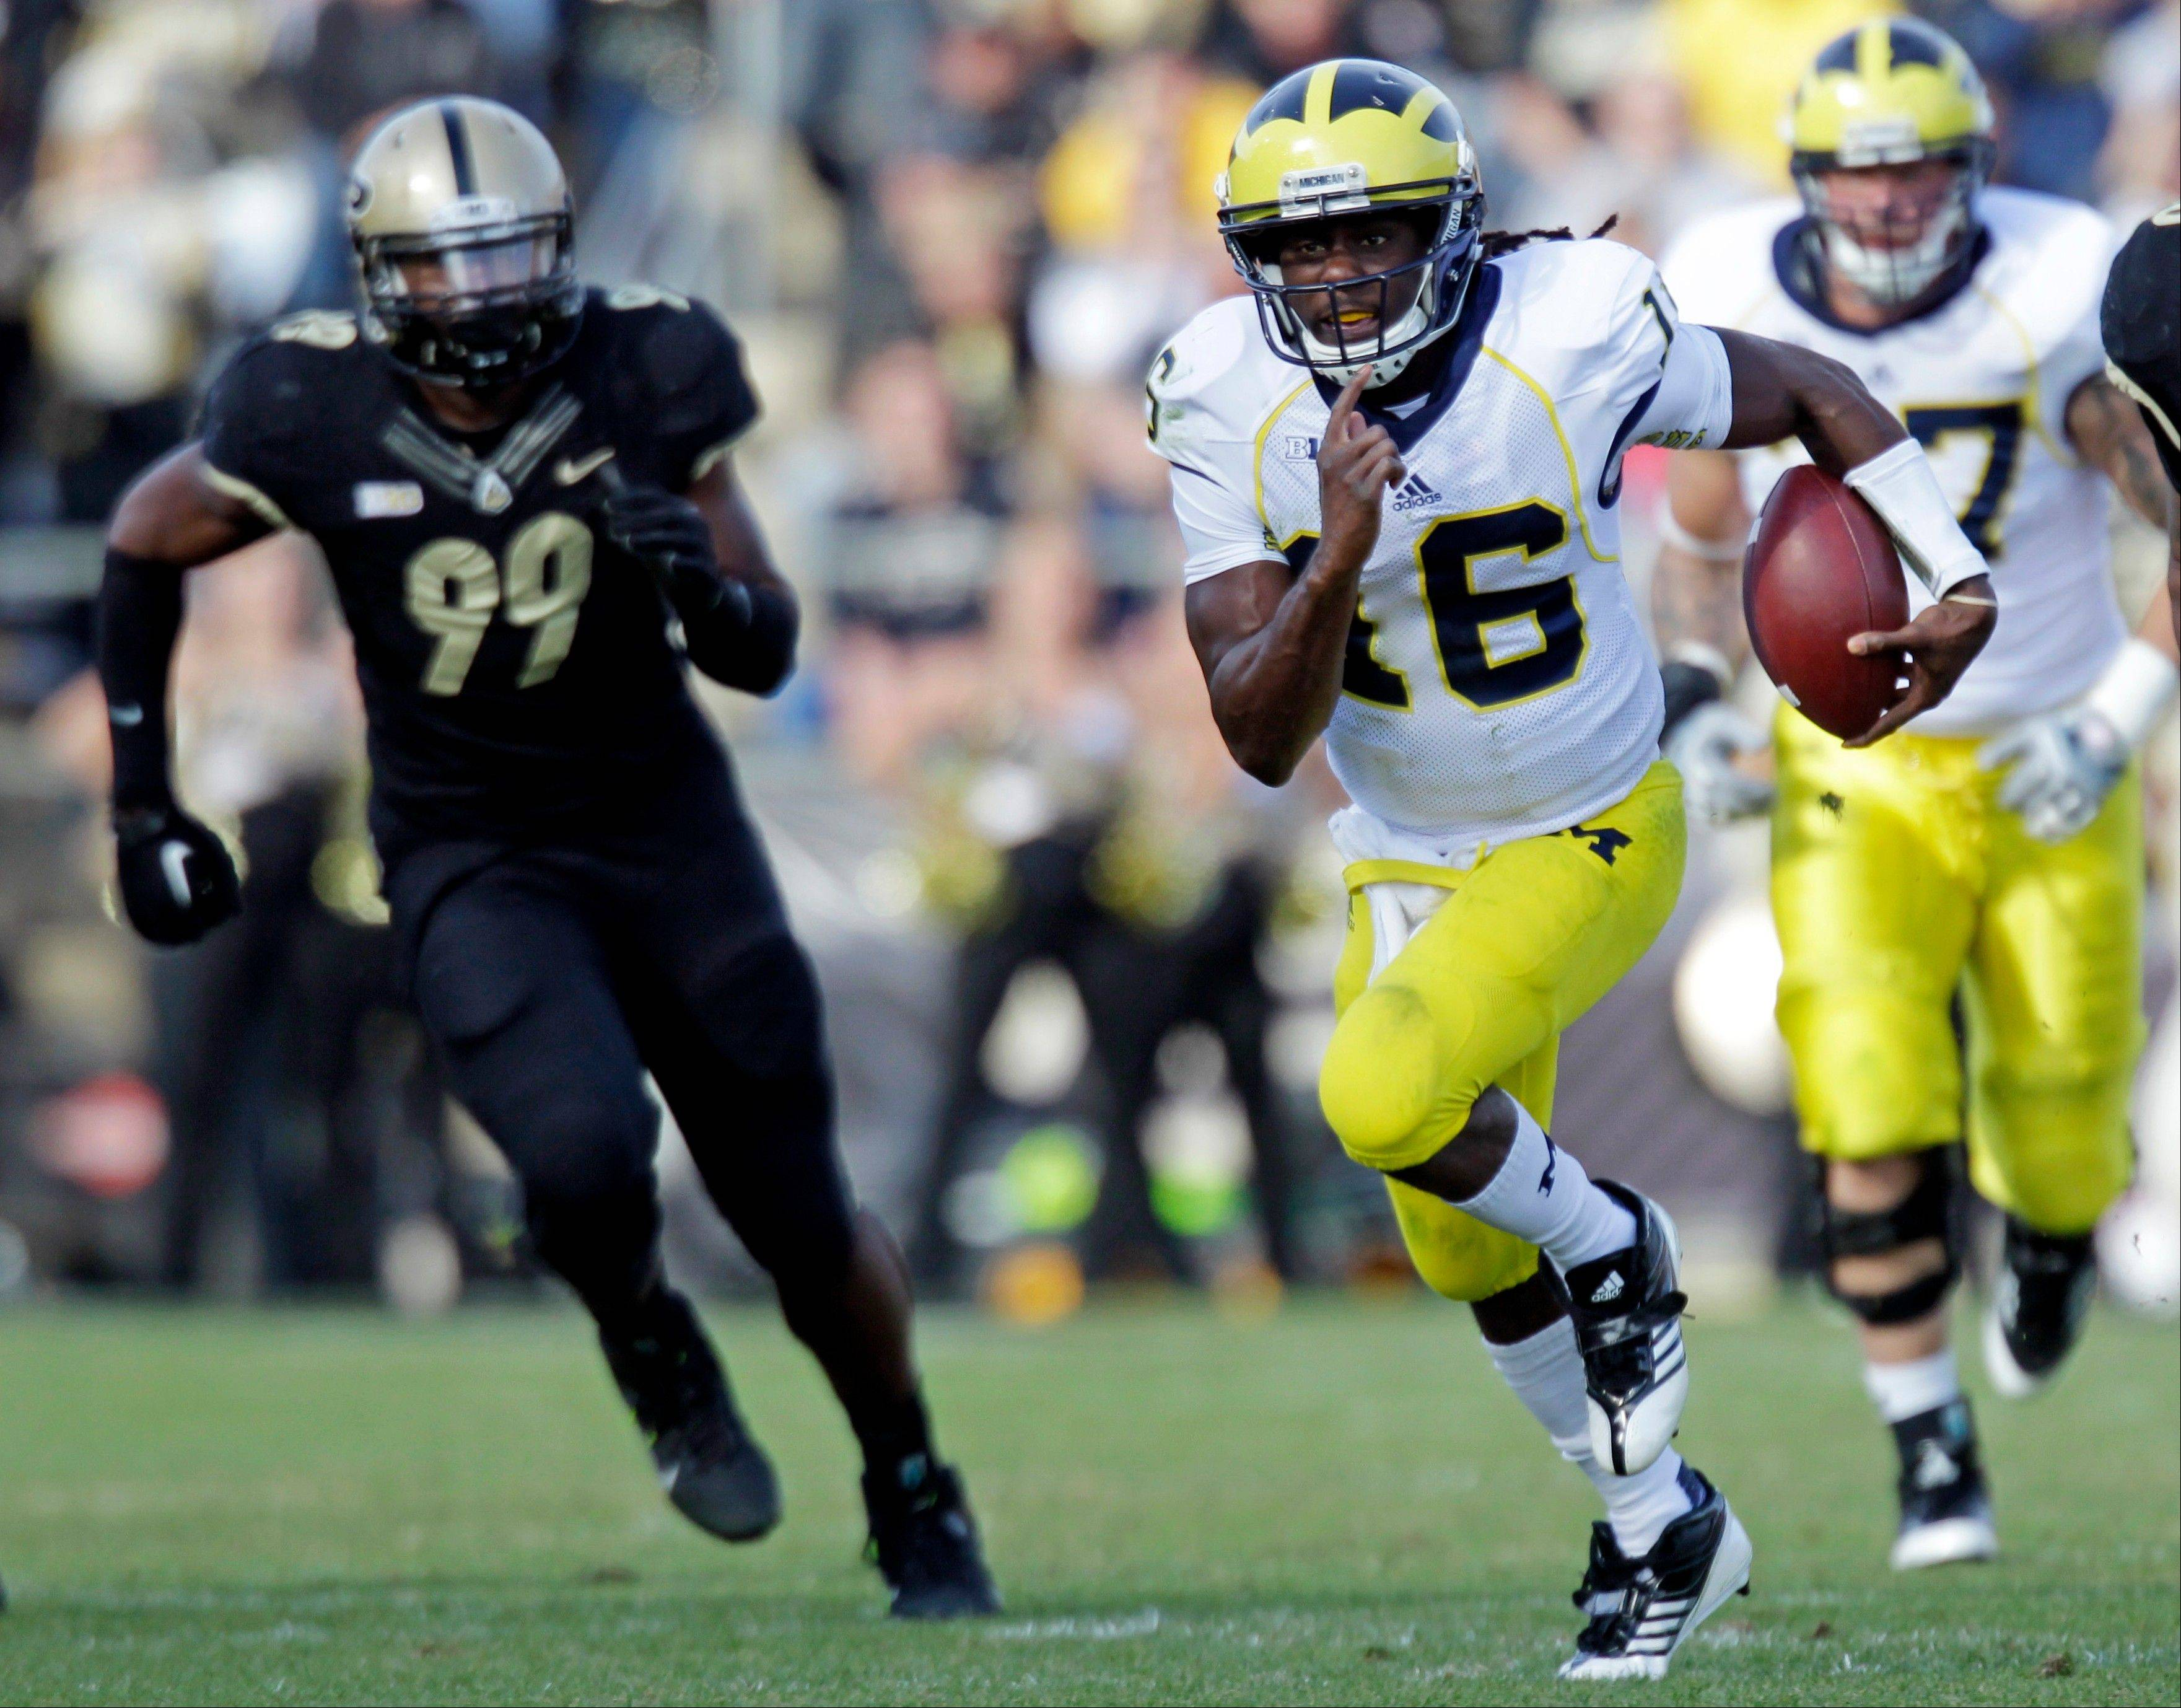 Michigan quarterback Denard Robinson gets past Purdue defensive end Ryan Russell as he picks up 38 yards Saturday during the first half in West Lafayette, Ind.